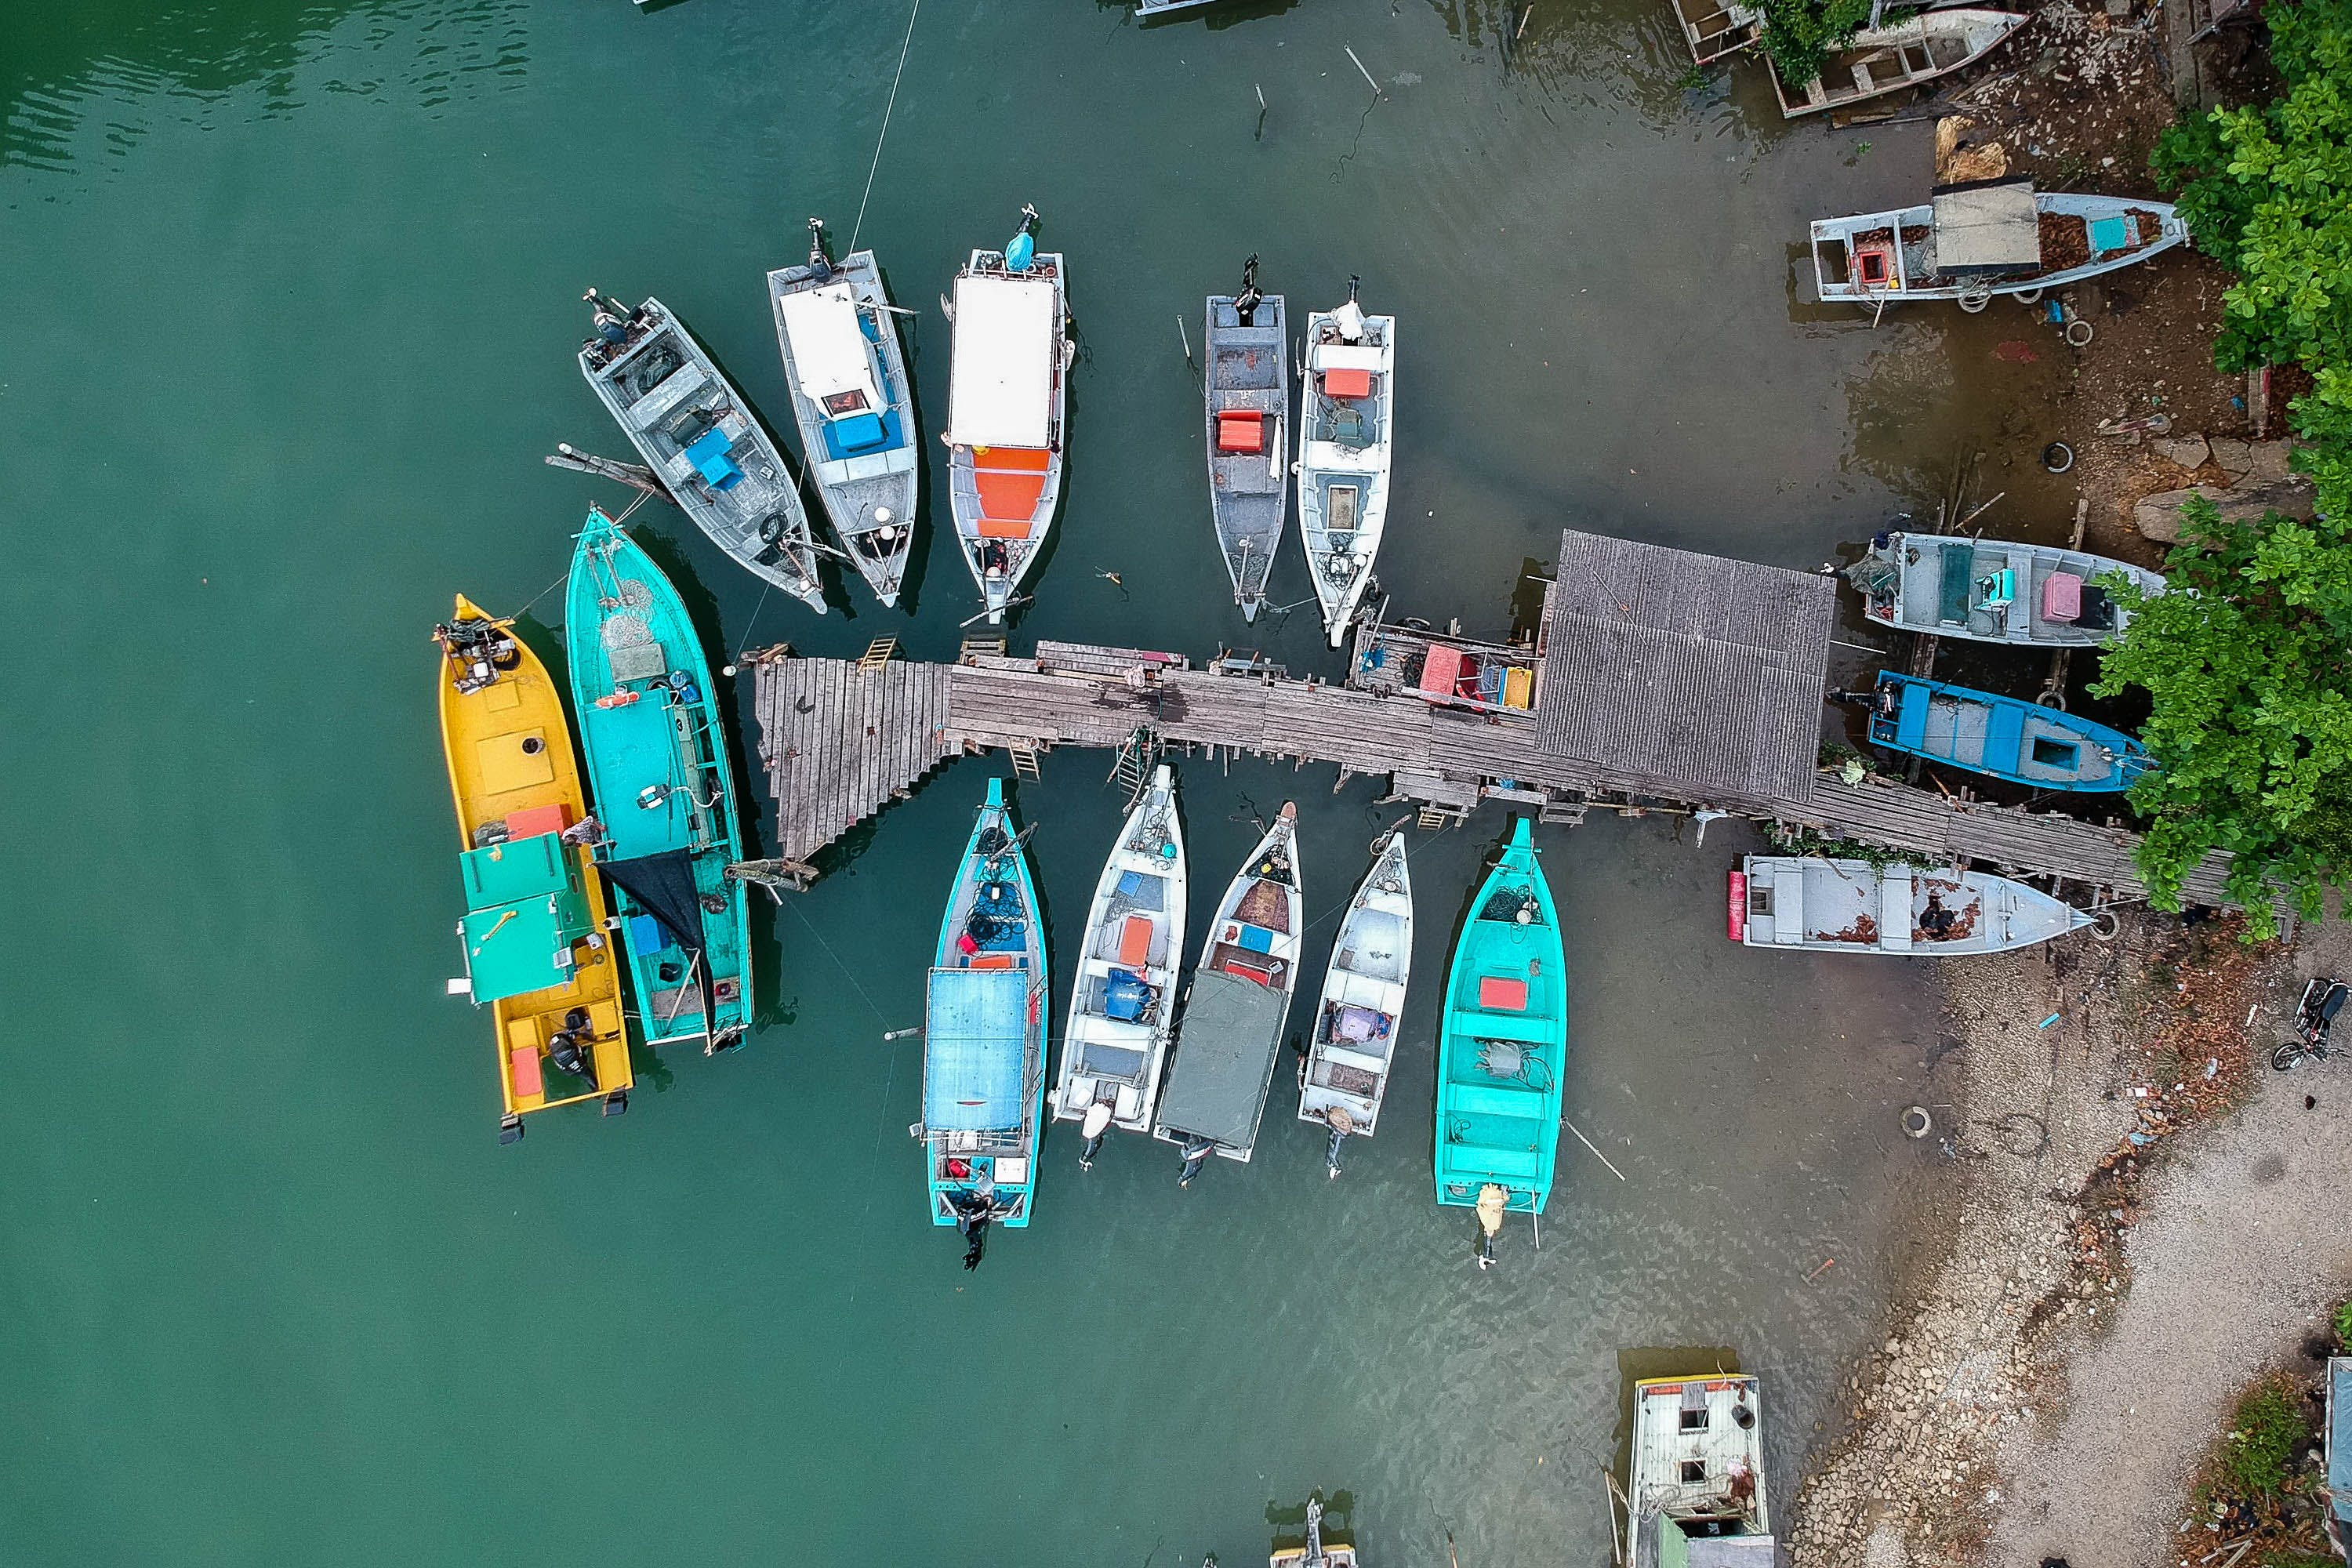 Aerial Shot Of Boats On Body Of Water